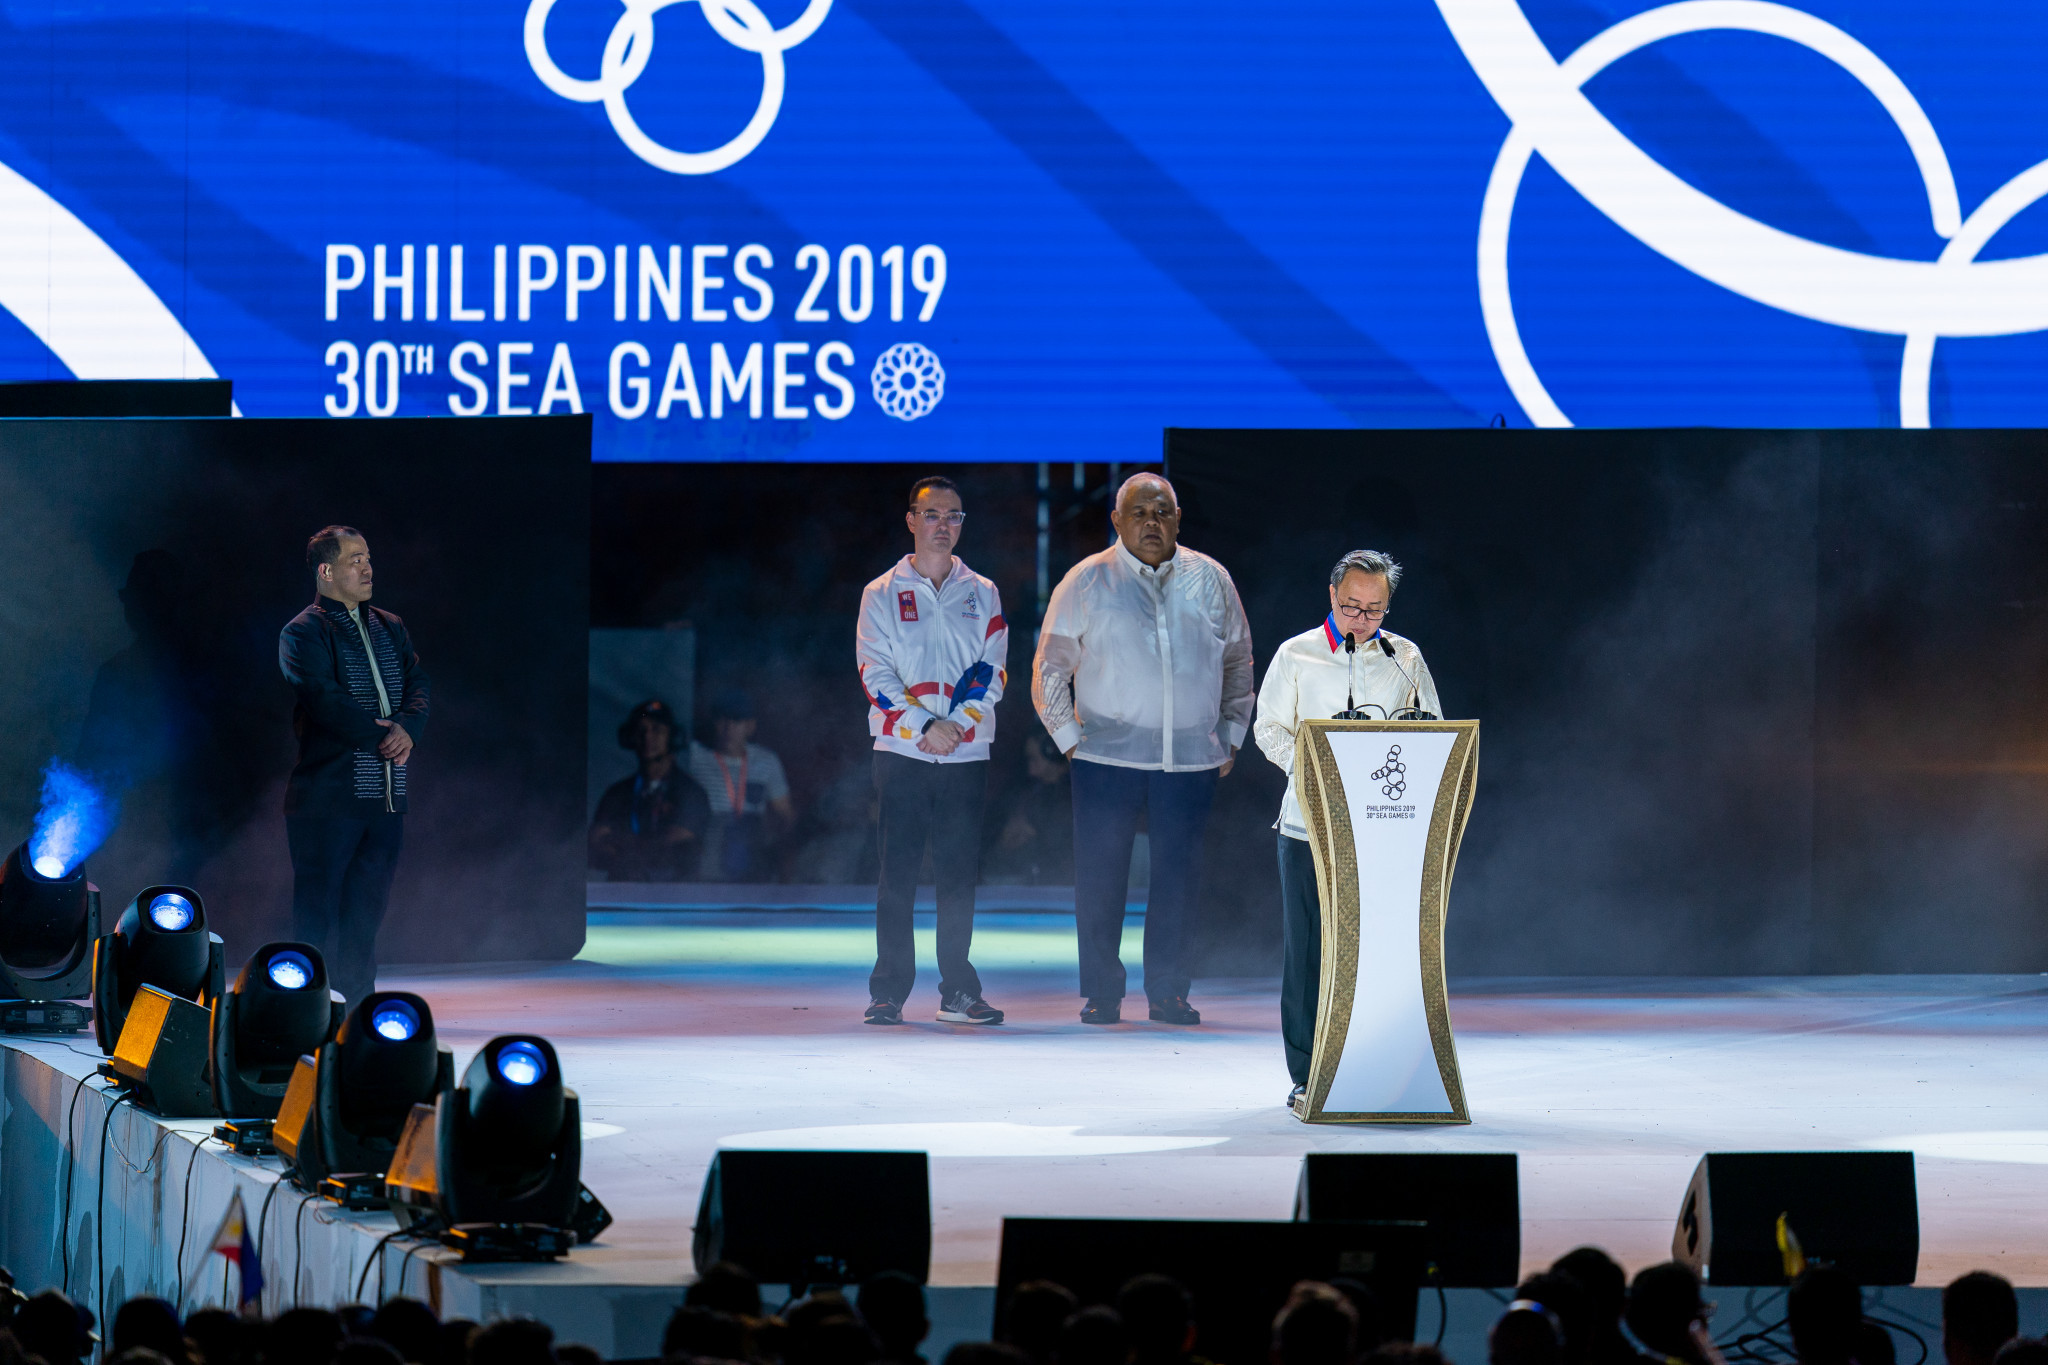 POC President Abraham Tolentino has confirmed he will table the country's bid next week ©Getty Images